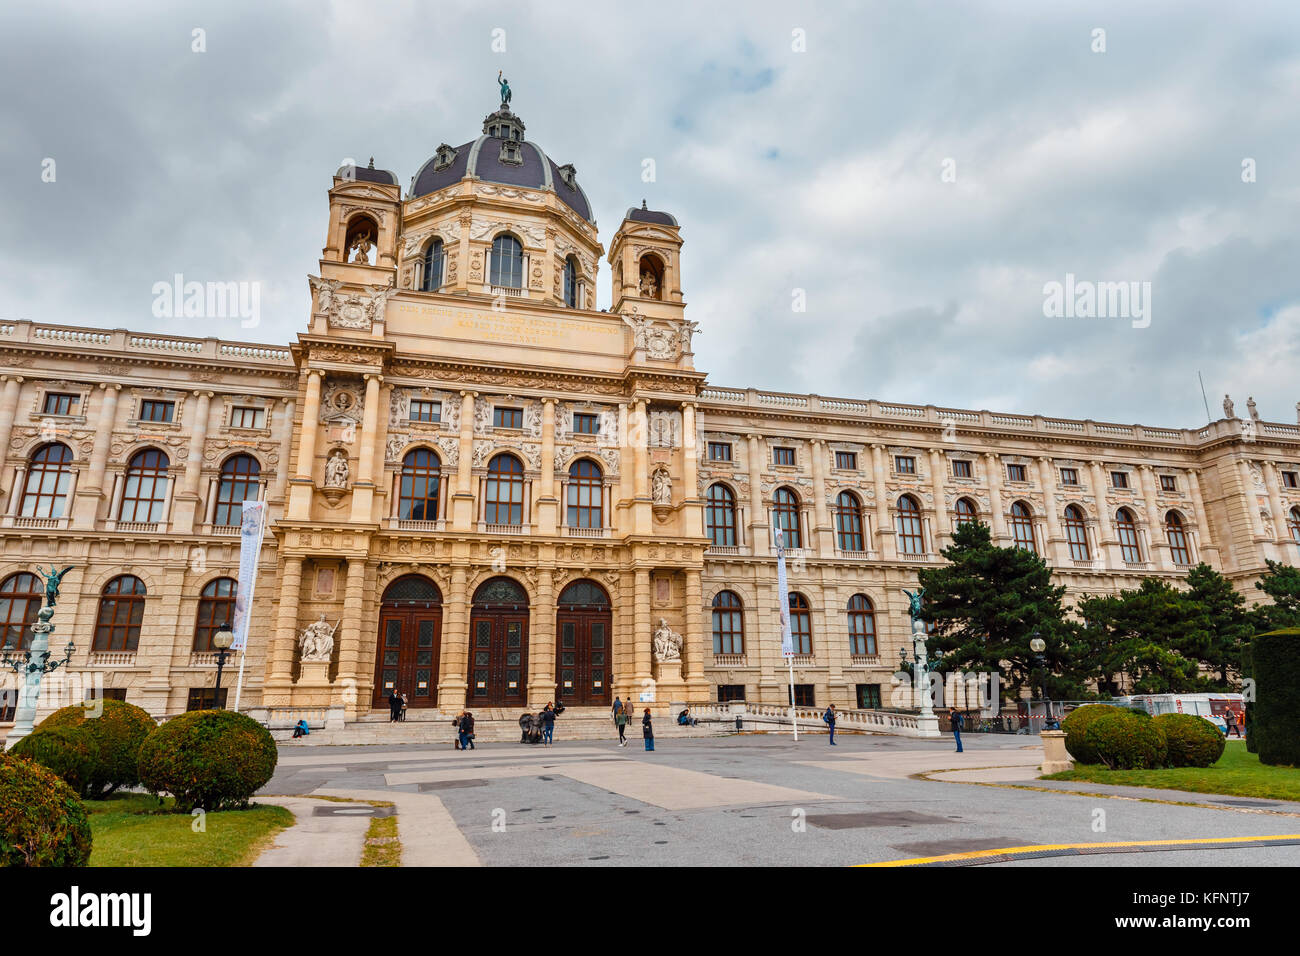 Vienna, Austria - 13 October, 2016: View of famous Natural History Museum with park and sculpture in Vienna, Austria - Stock Image